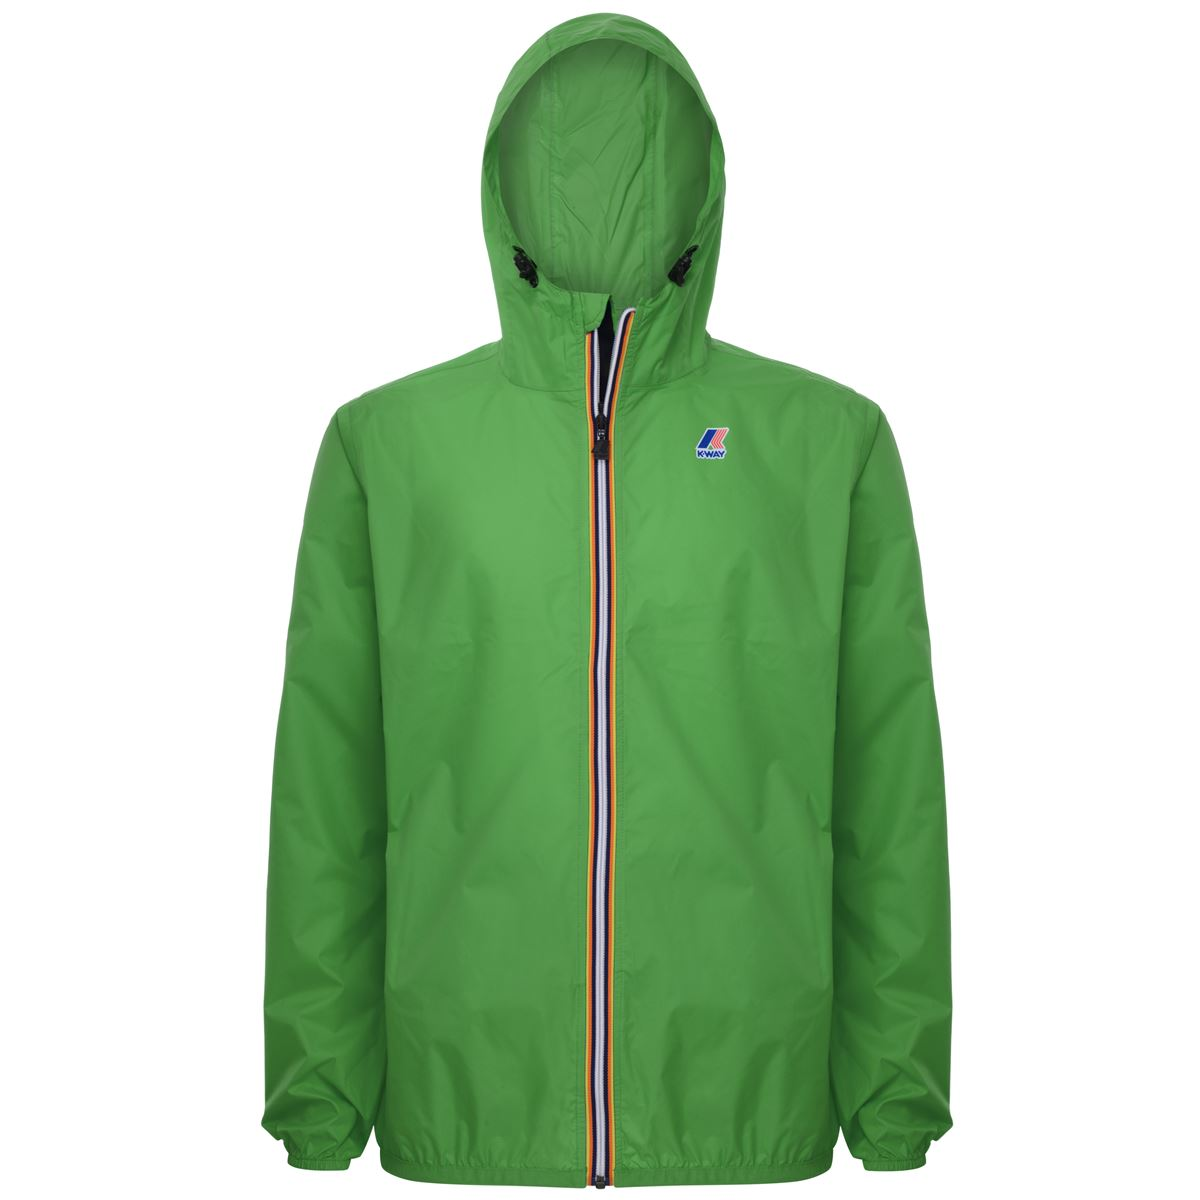 K-way Le Vrai Claude 3.0 Jacket - Green